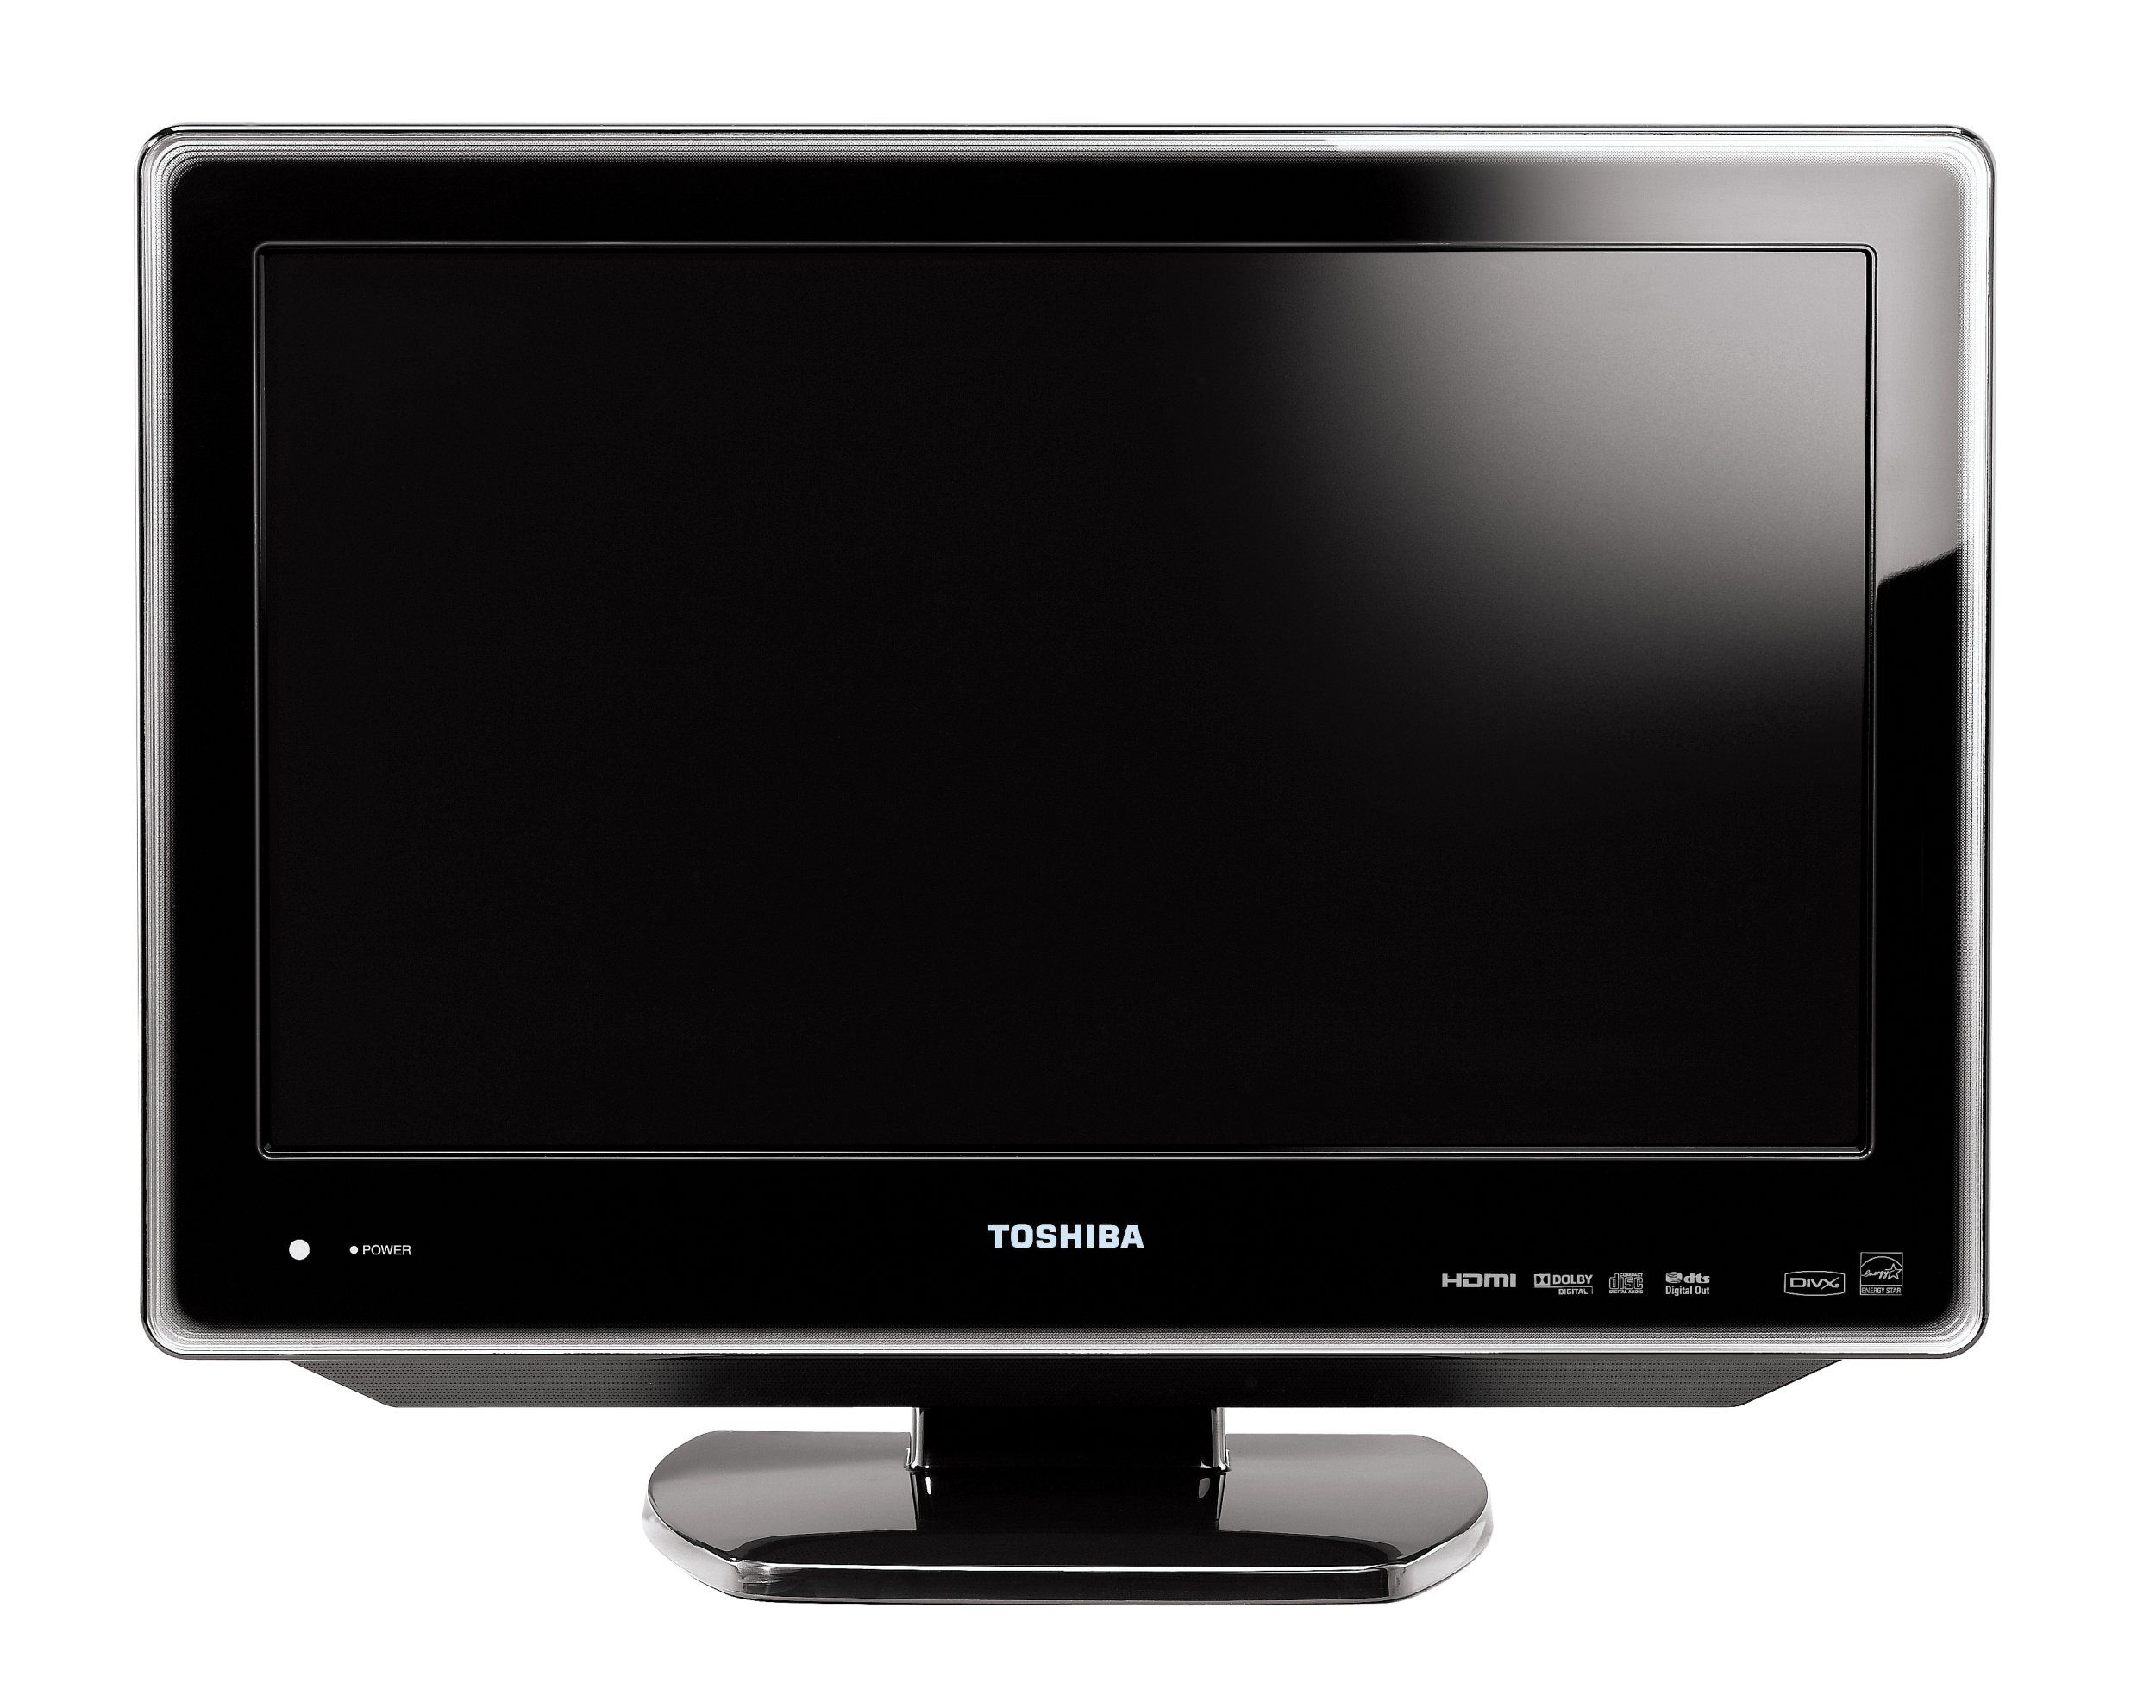 Toshiba 19lv610u 19 Inch 720p Lcd Tv With Built In Dvd Player Black